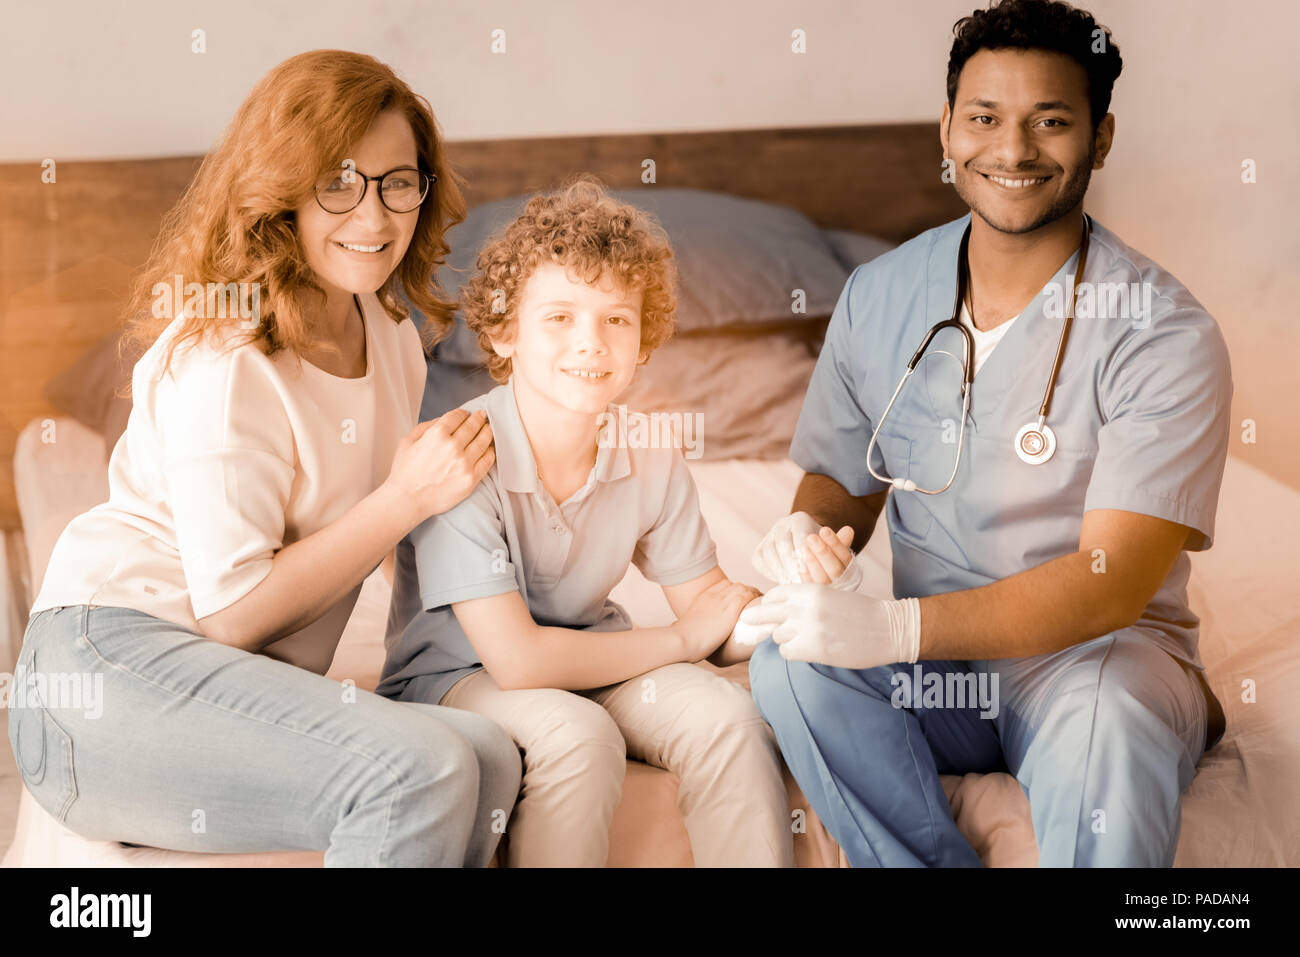 Delighted boy sitting between his doc and mom Stock Photo